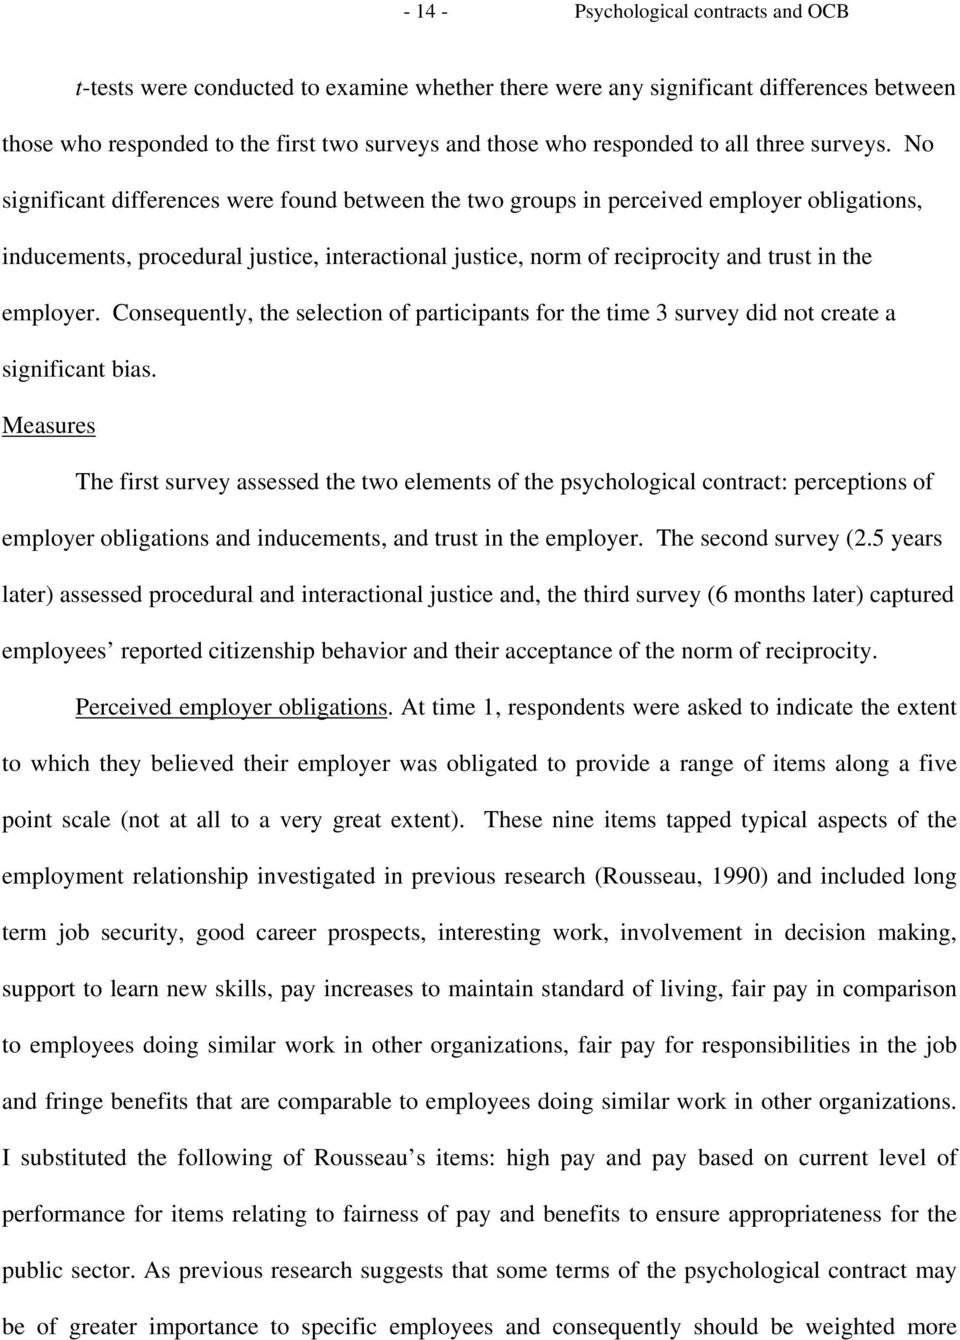 No significant differences were found between the two groups in perceived employer obligations, inducements, procedural justice, interactional justice, norm of reciprocity and trust in the employer.